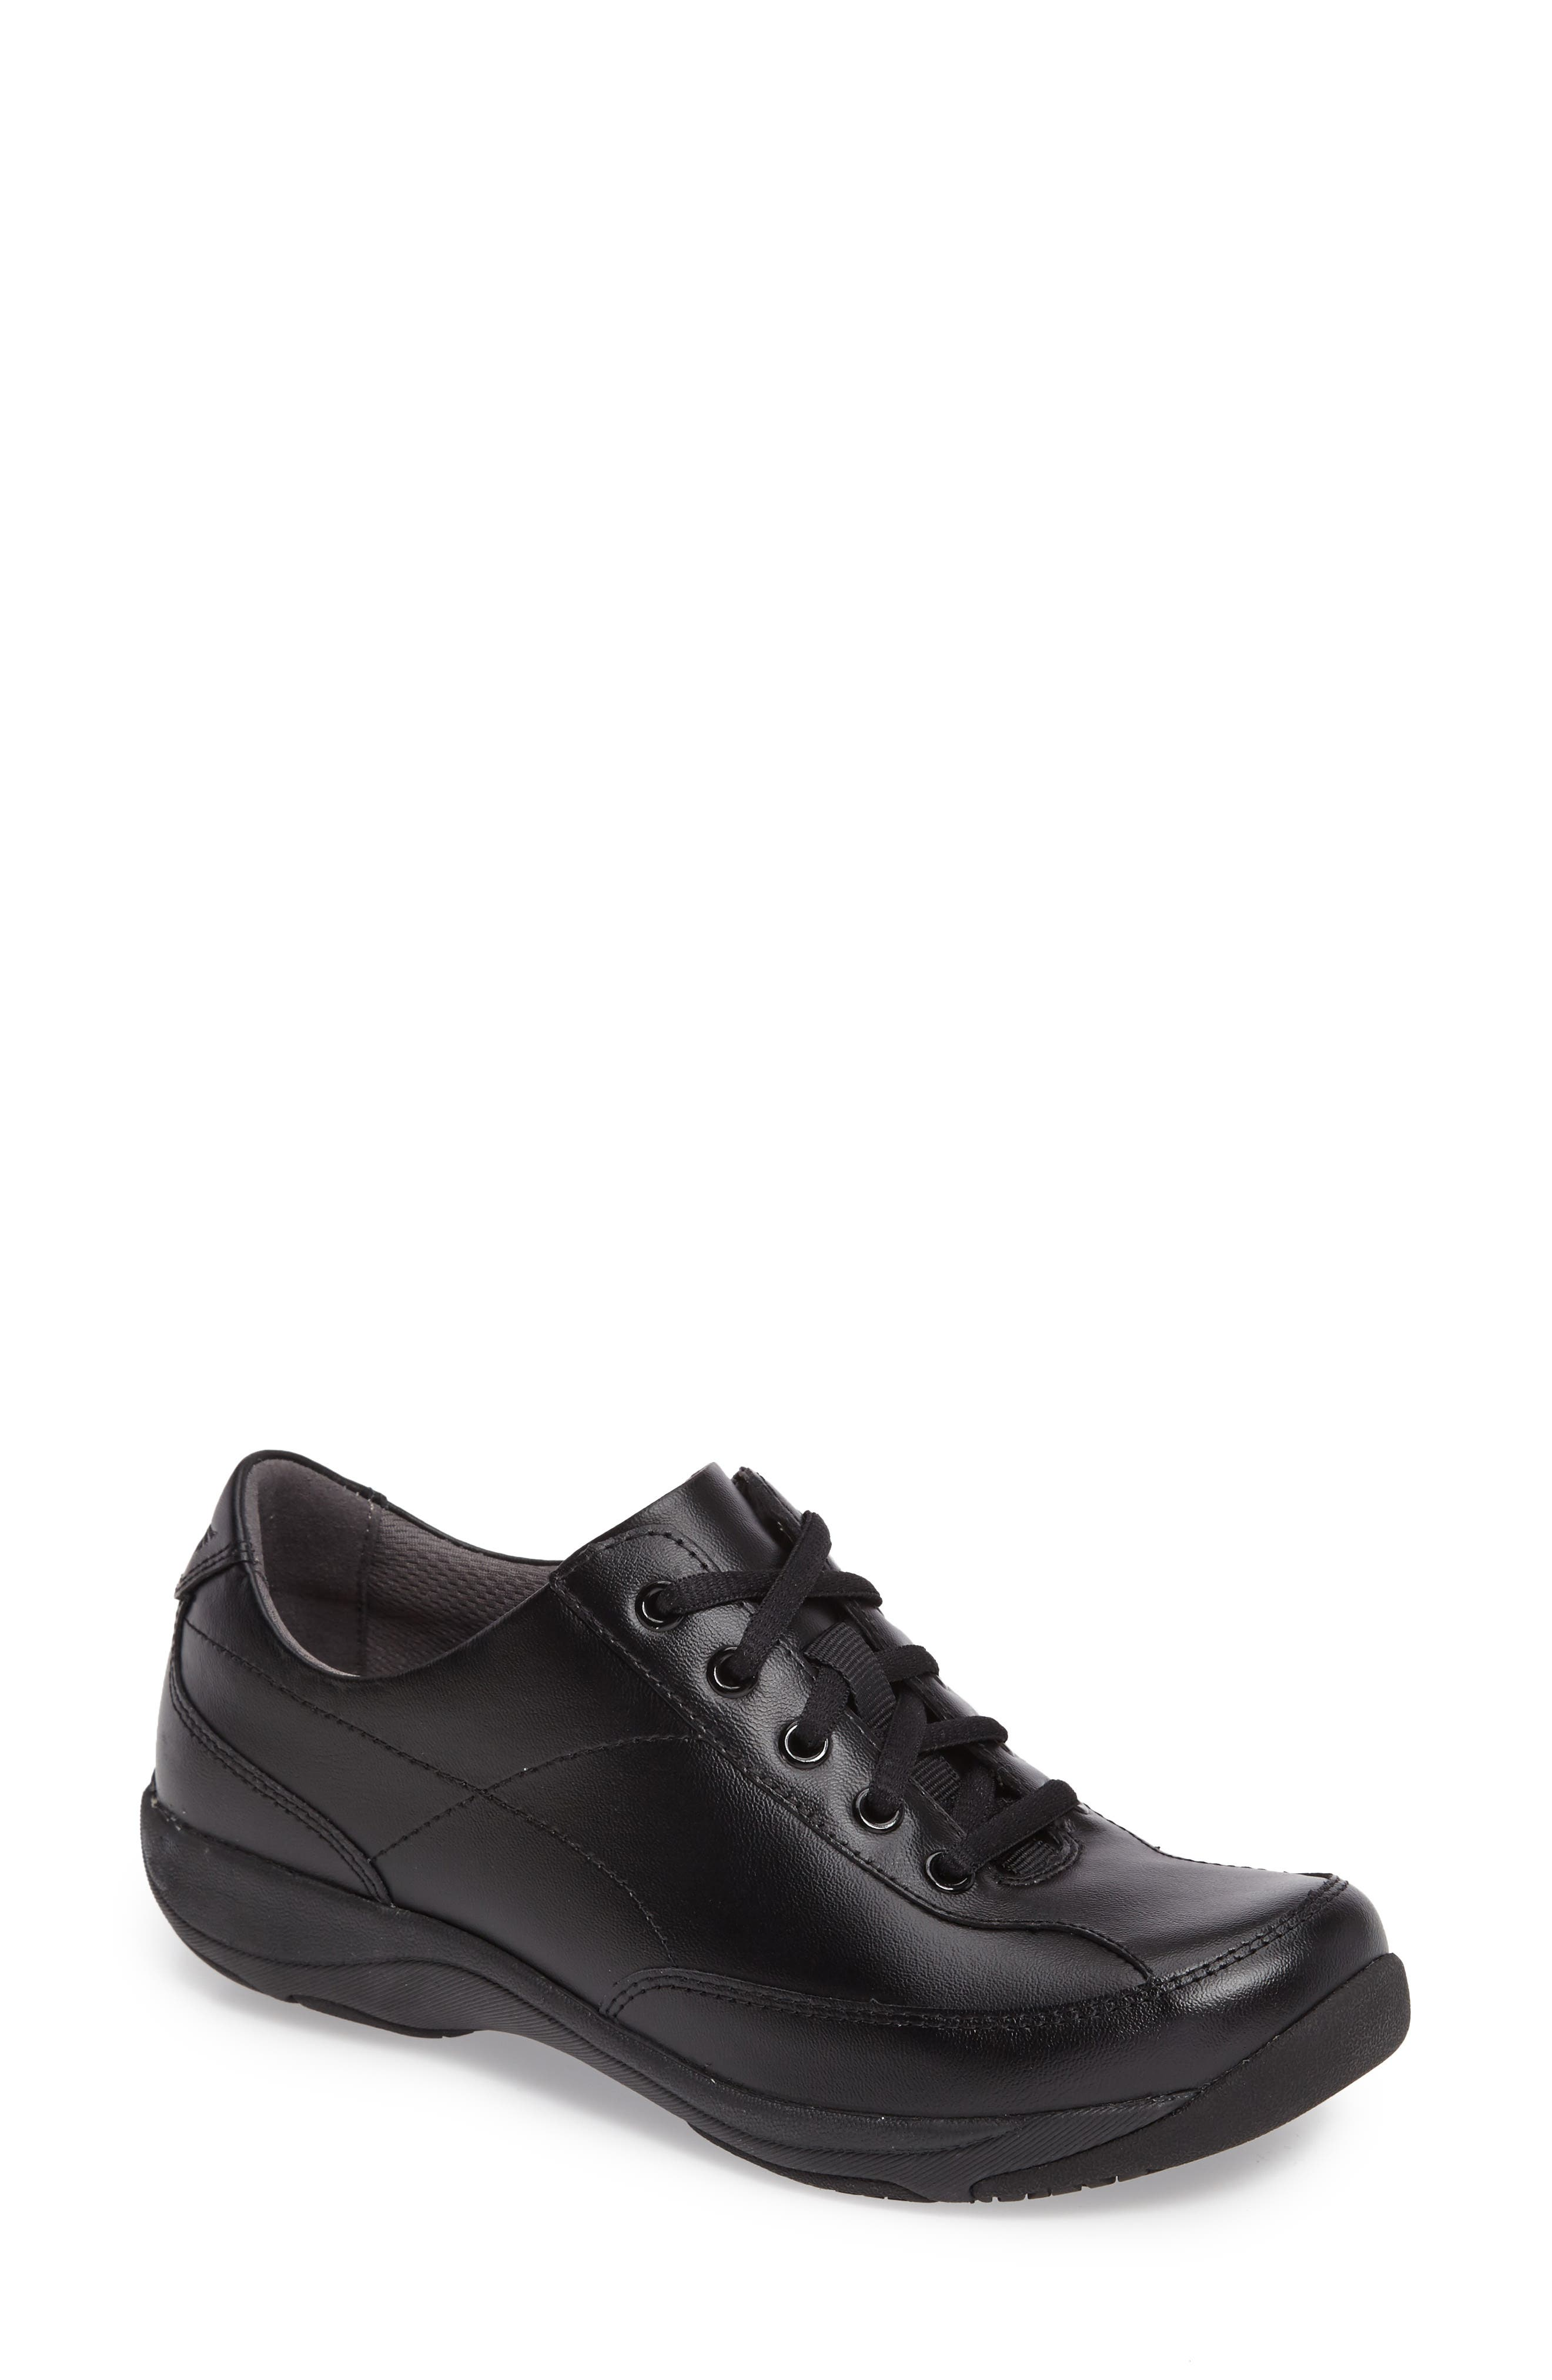 Emma Lace-Up Sneaker,                             Main thumbnail 1, color,                             BLACK LEATHER